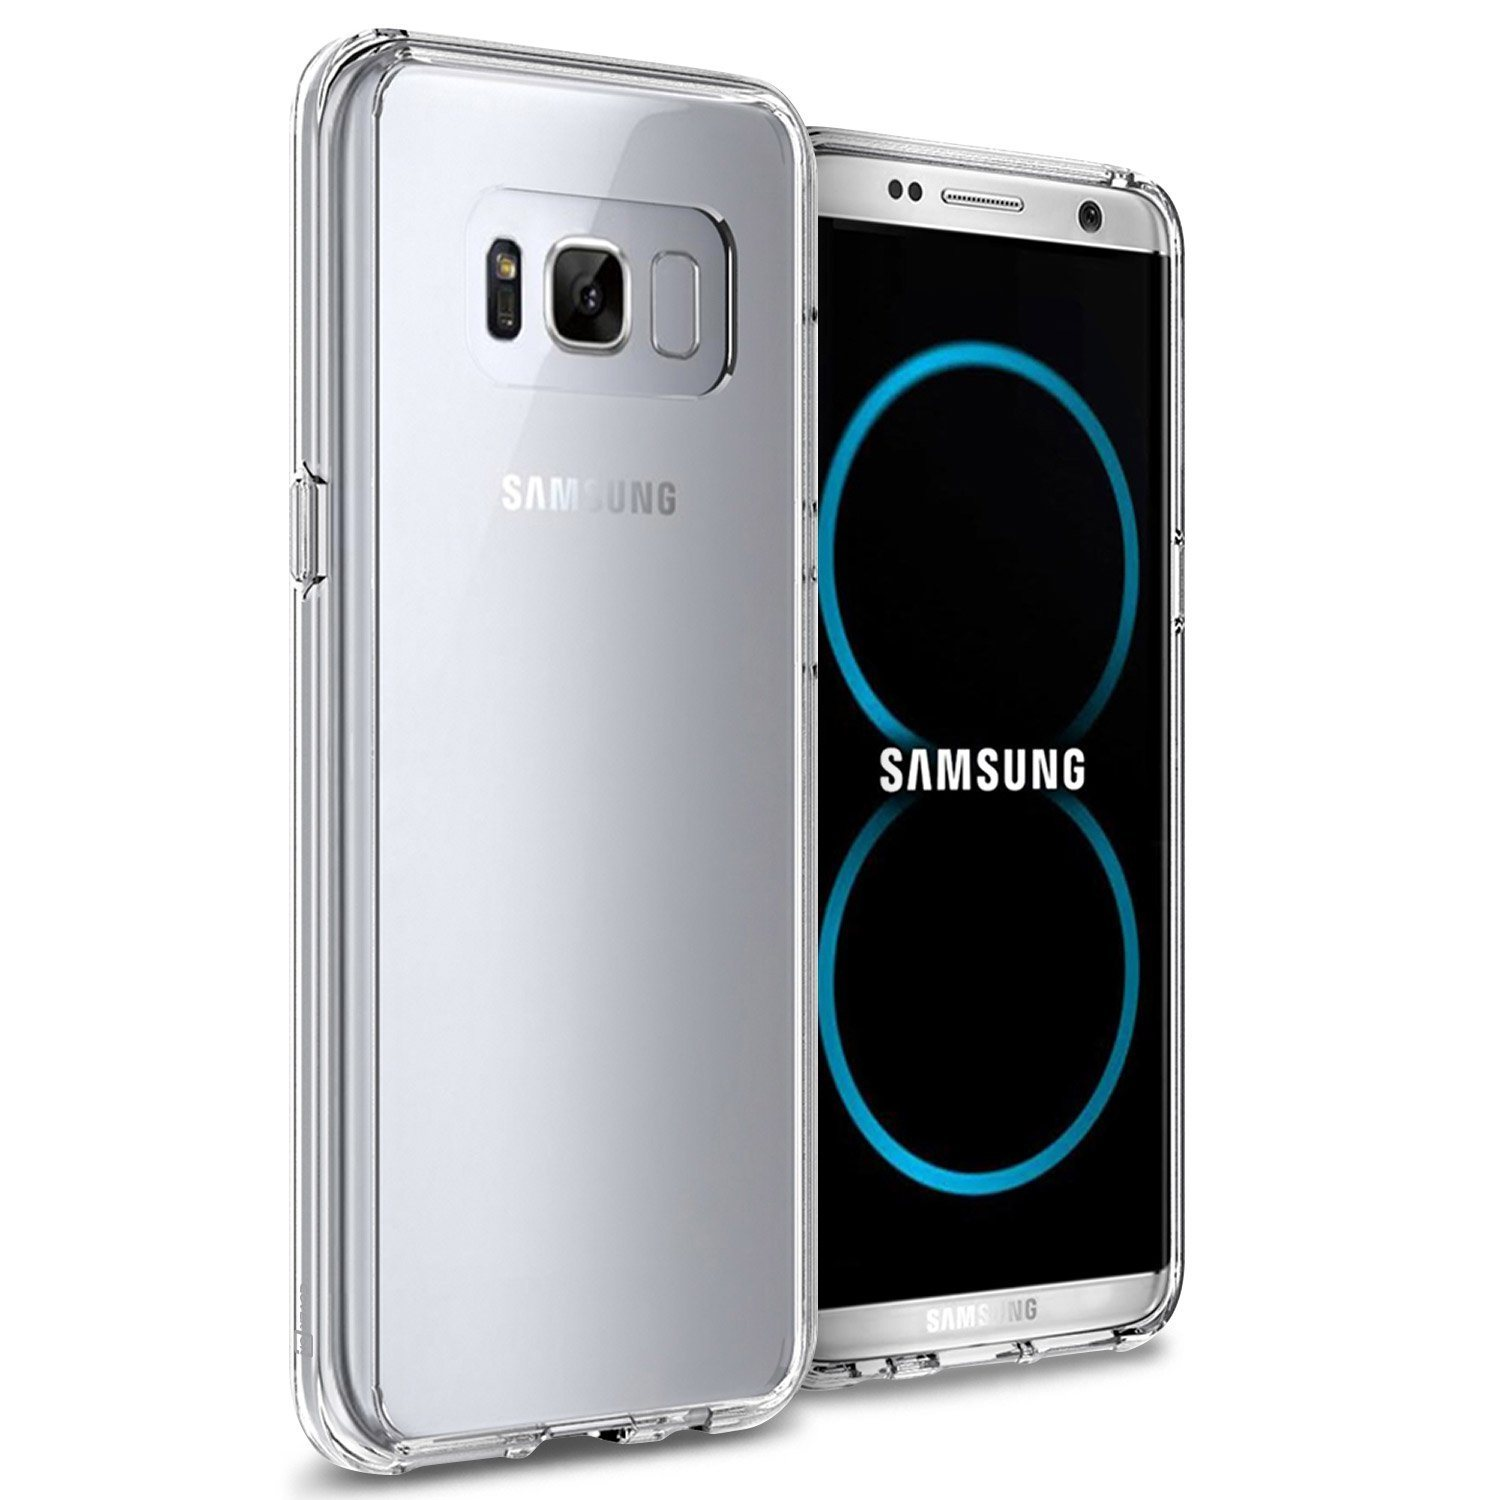 Hard Clear Back Cover with Flexible TPU Bumpers Slim Fit Phone Cover Case for Samsung Galaxy S8